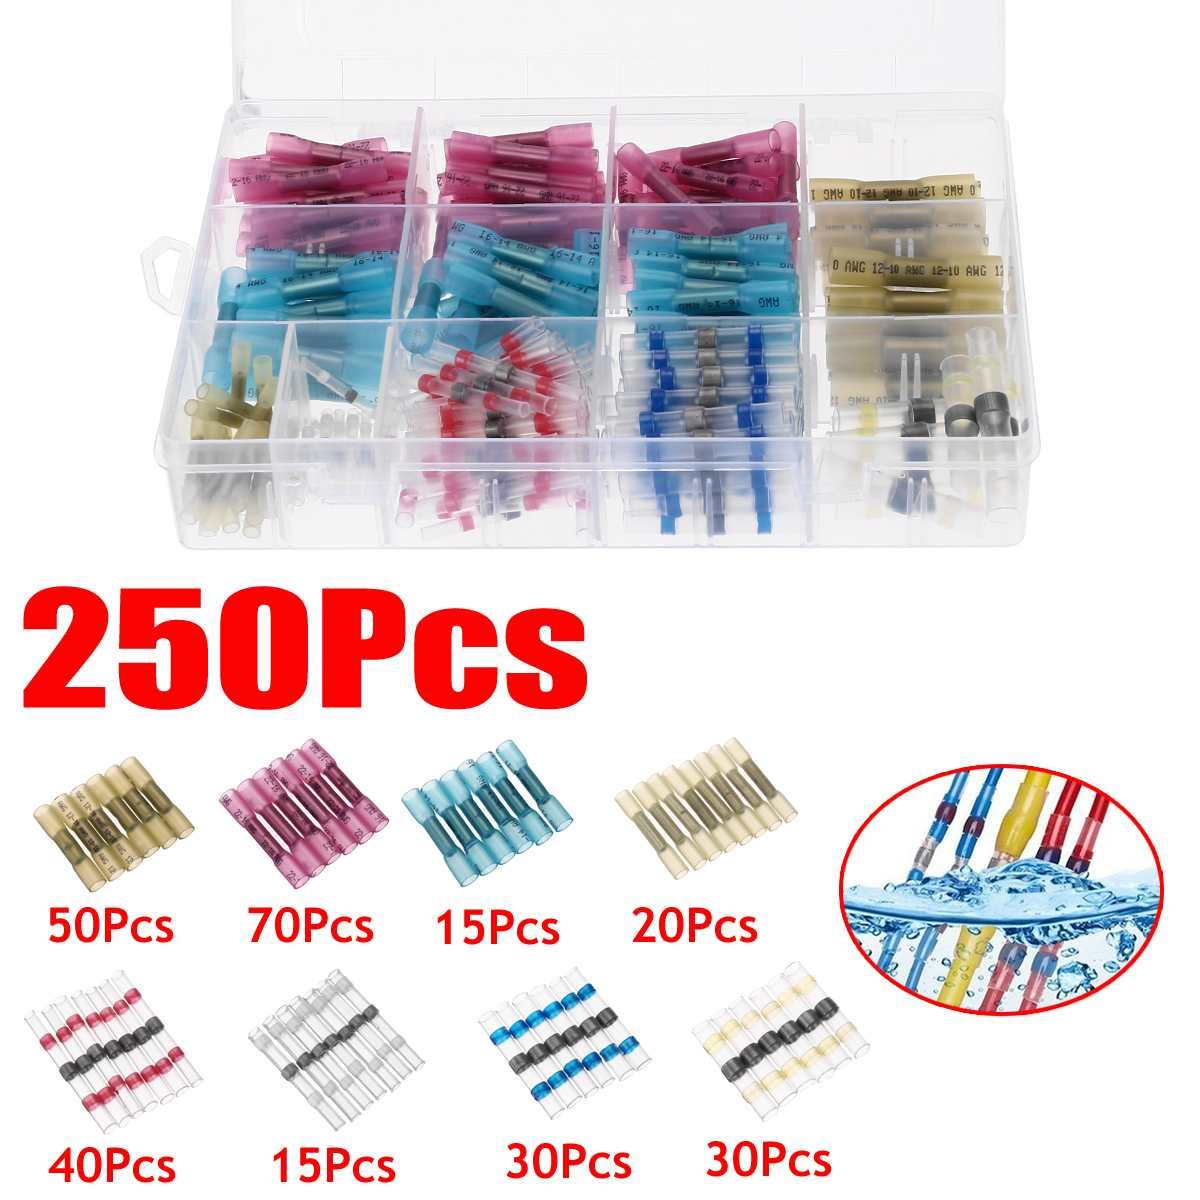 250 Pcs Heat Shrink Tubing Insulation Shrinkable Tubes 2:1 Electrical Wire Cable Wrap Assortment Electric Insulation Sleeve Kit